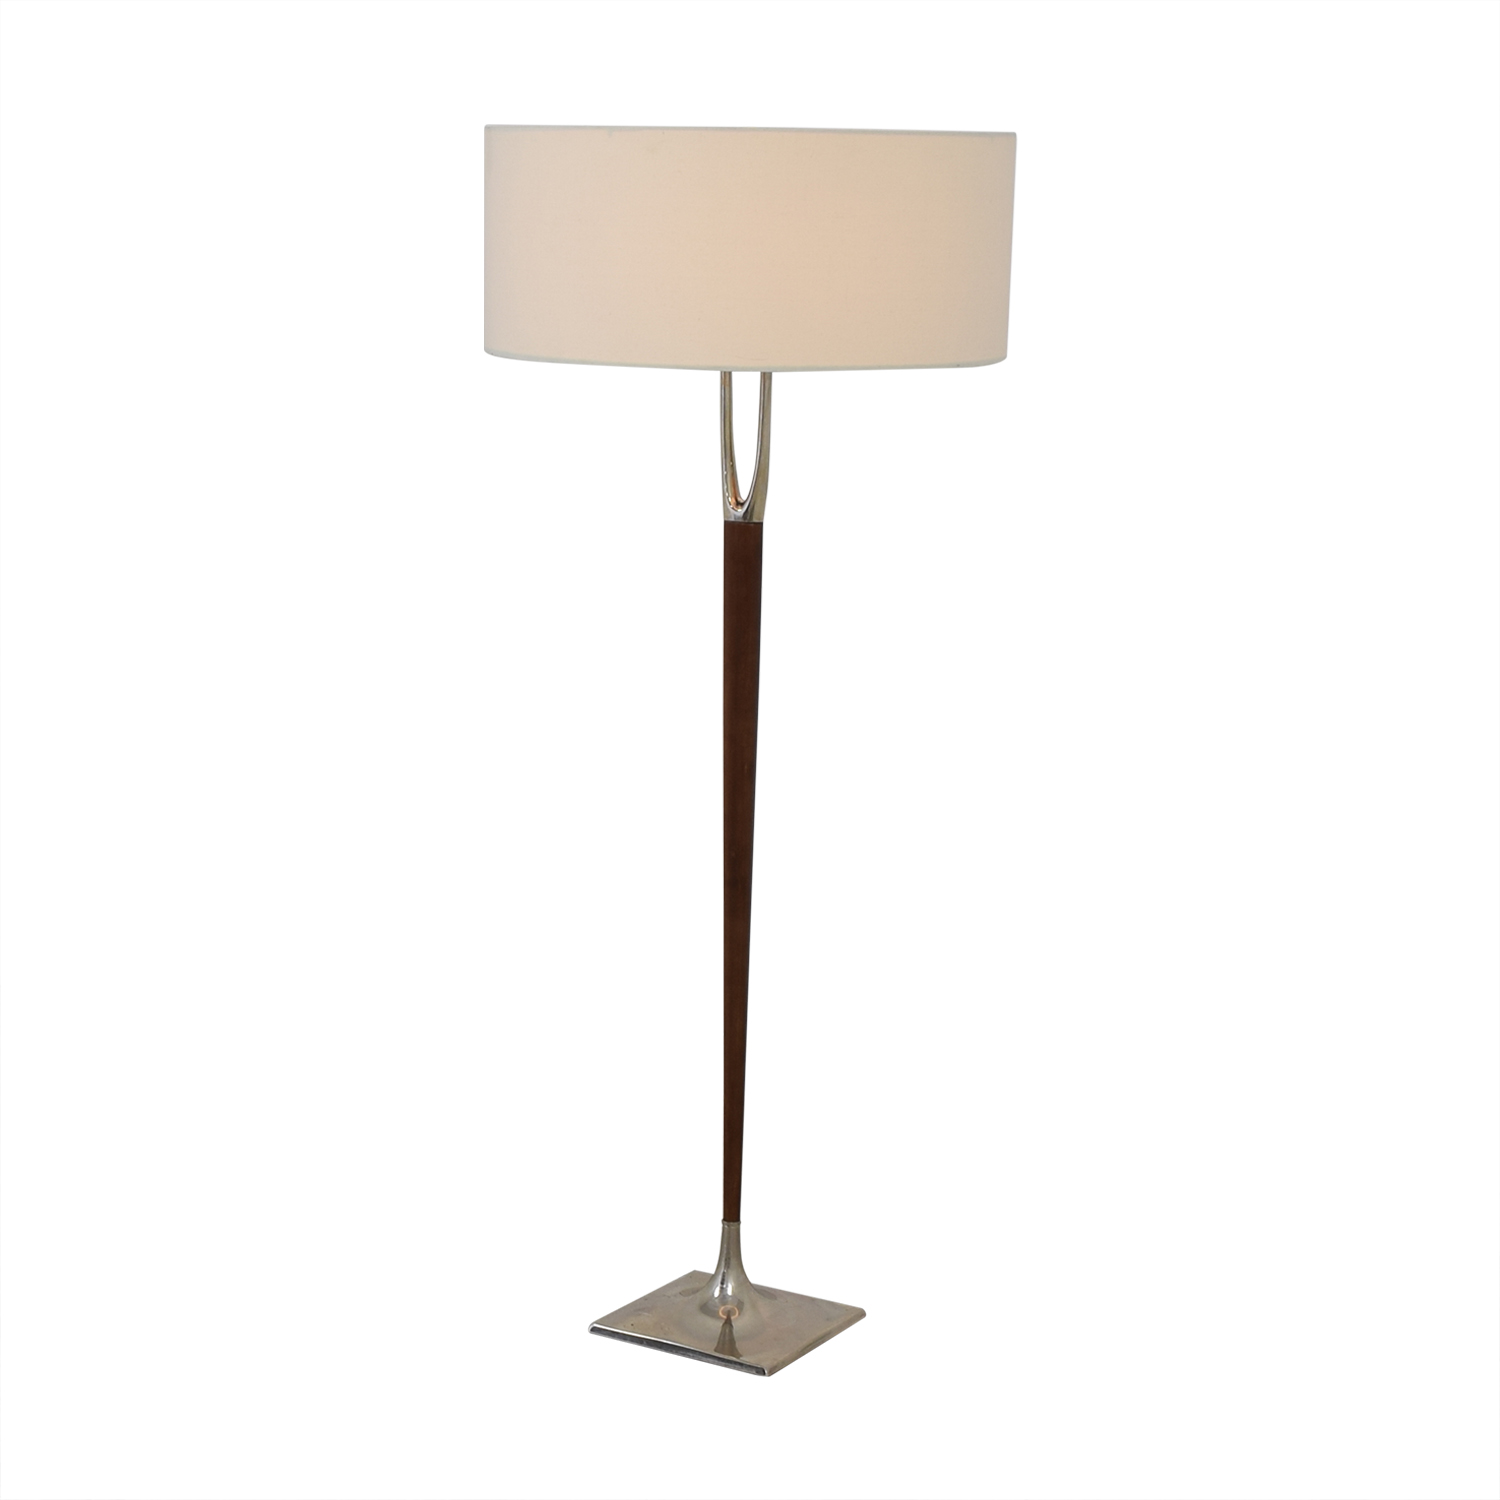 Rejuvenation Rejuvenation Tall Floor Lamp second hand